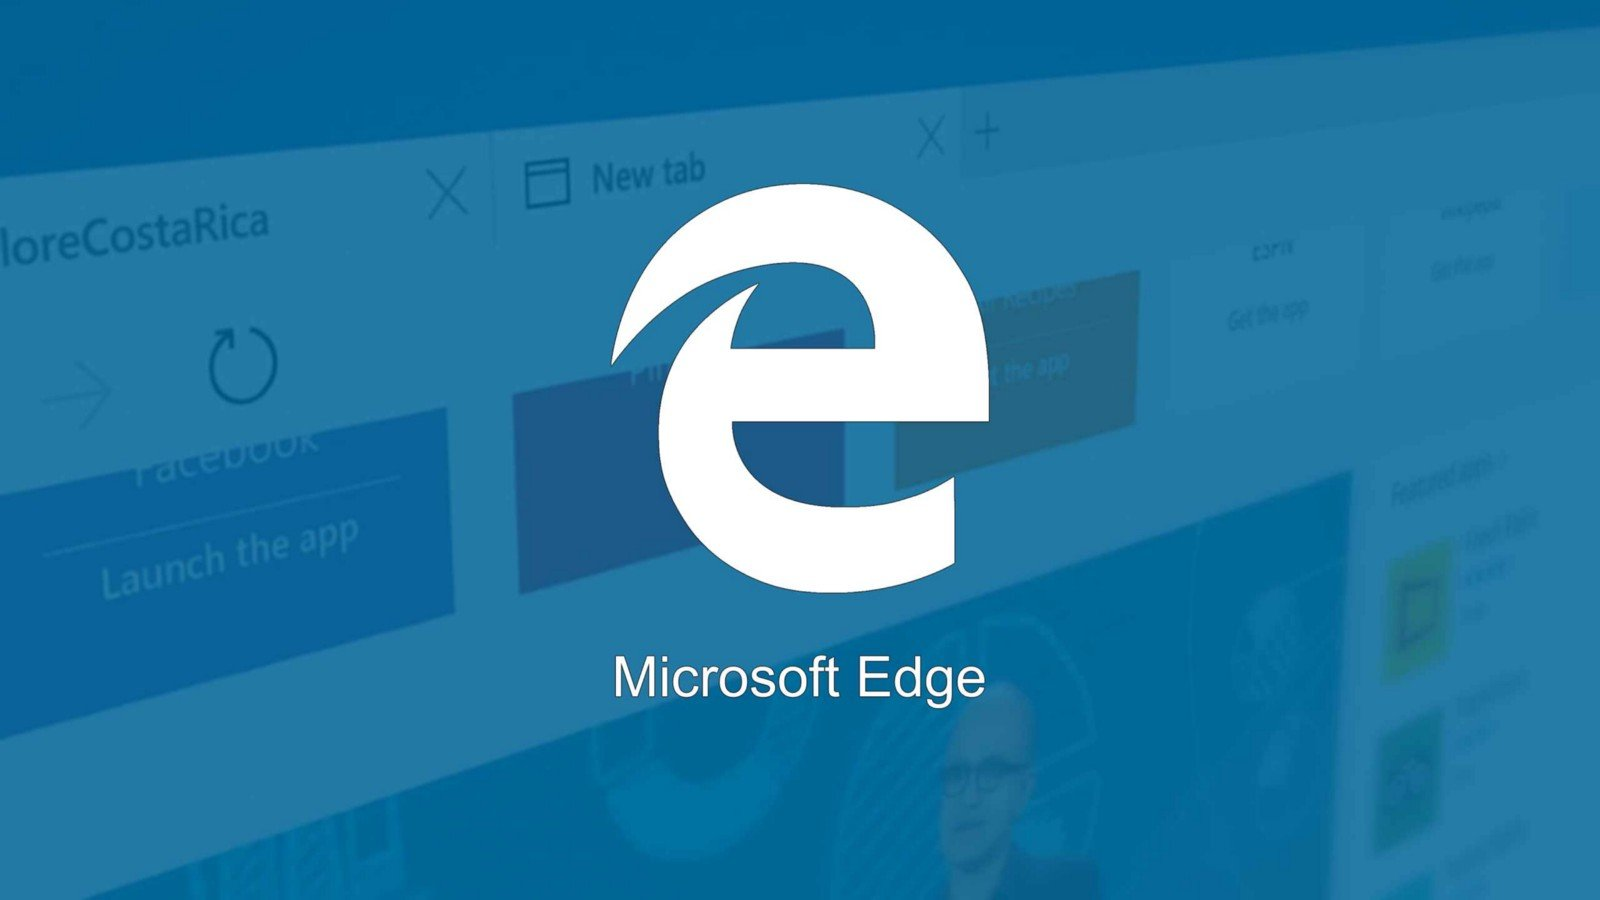 microsoft, microsoft edge, windows 10, windows 10 edge, windows 10 edge browser, edge browser